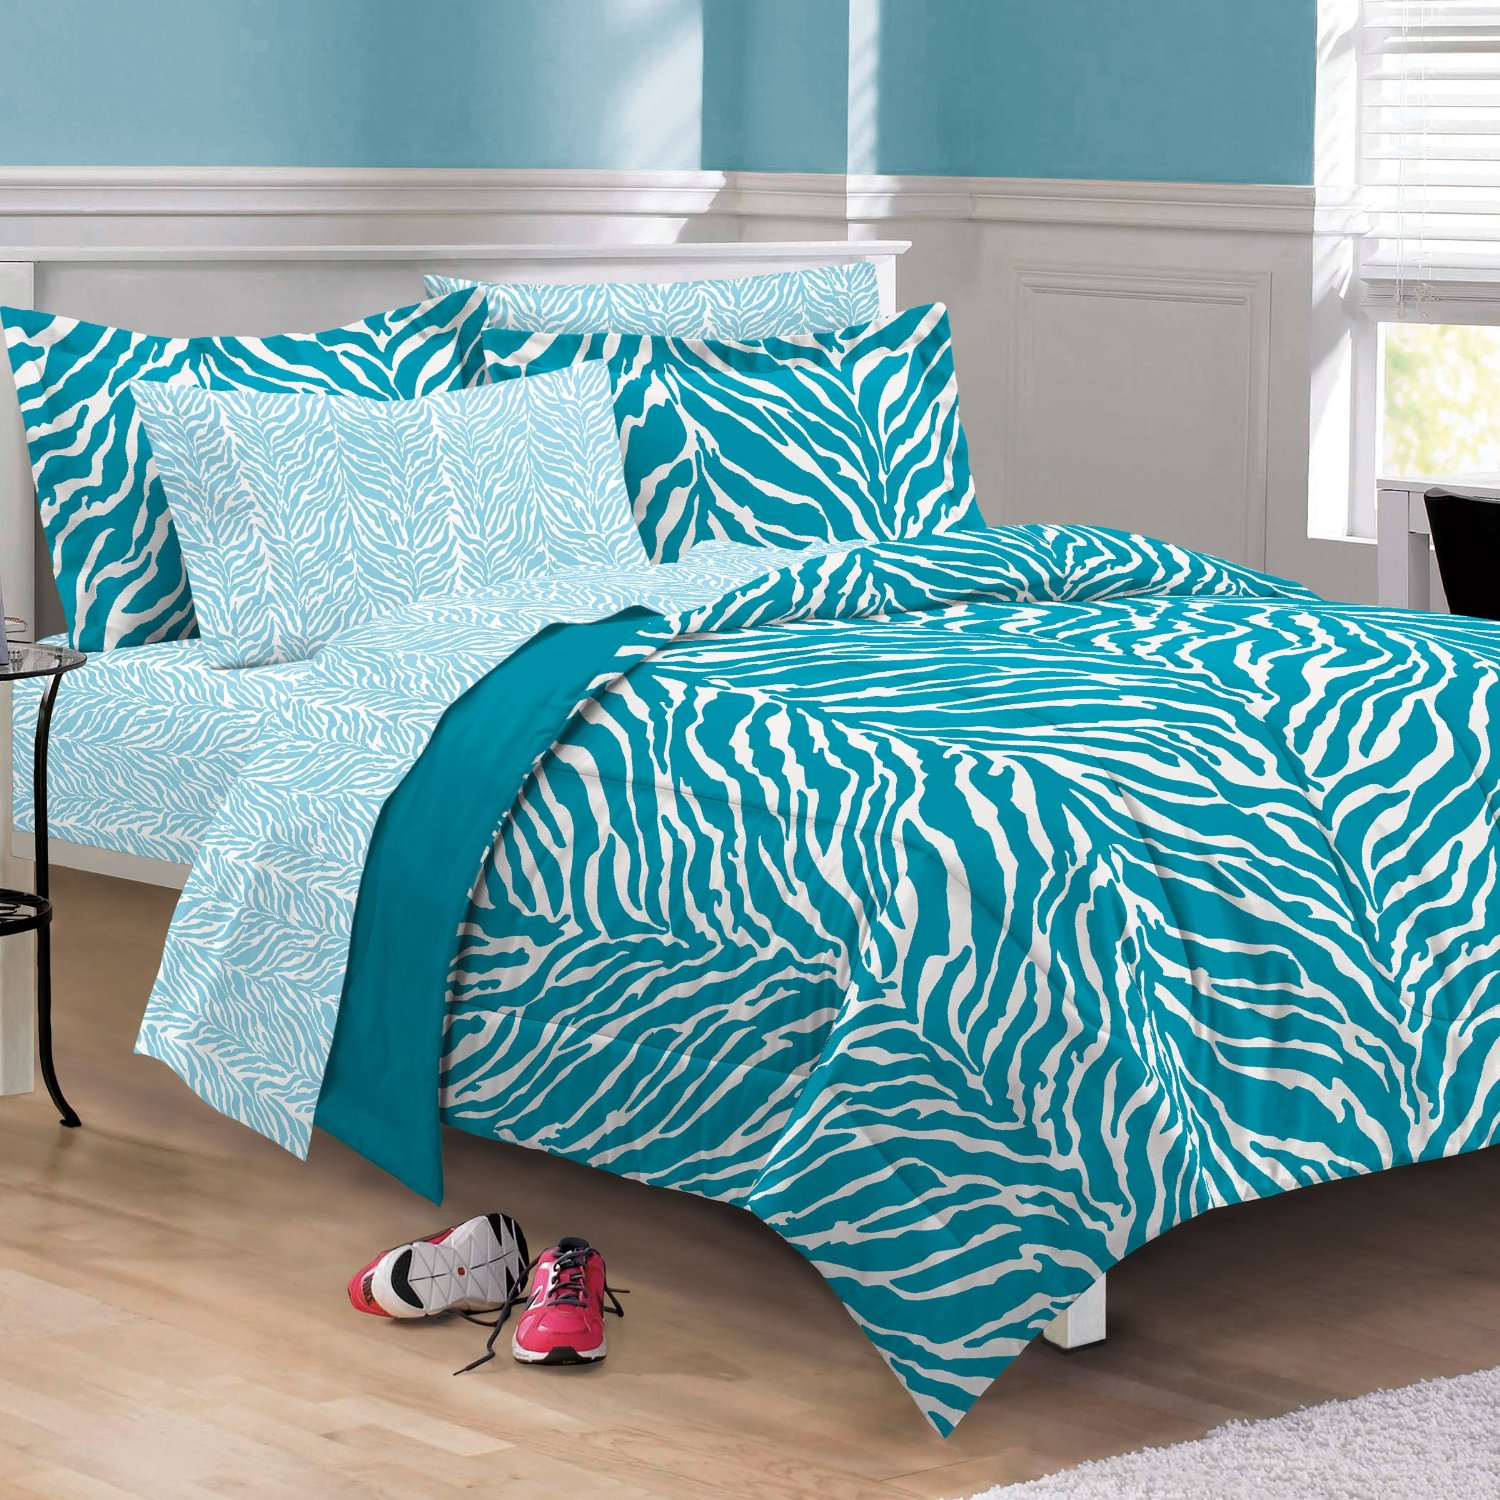 Total fab black white and turquoise bedding Zebra print bedding